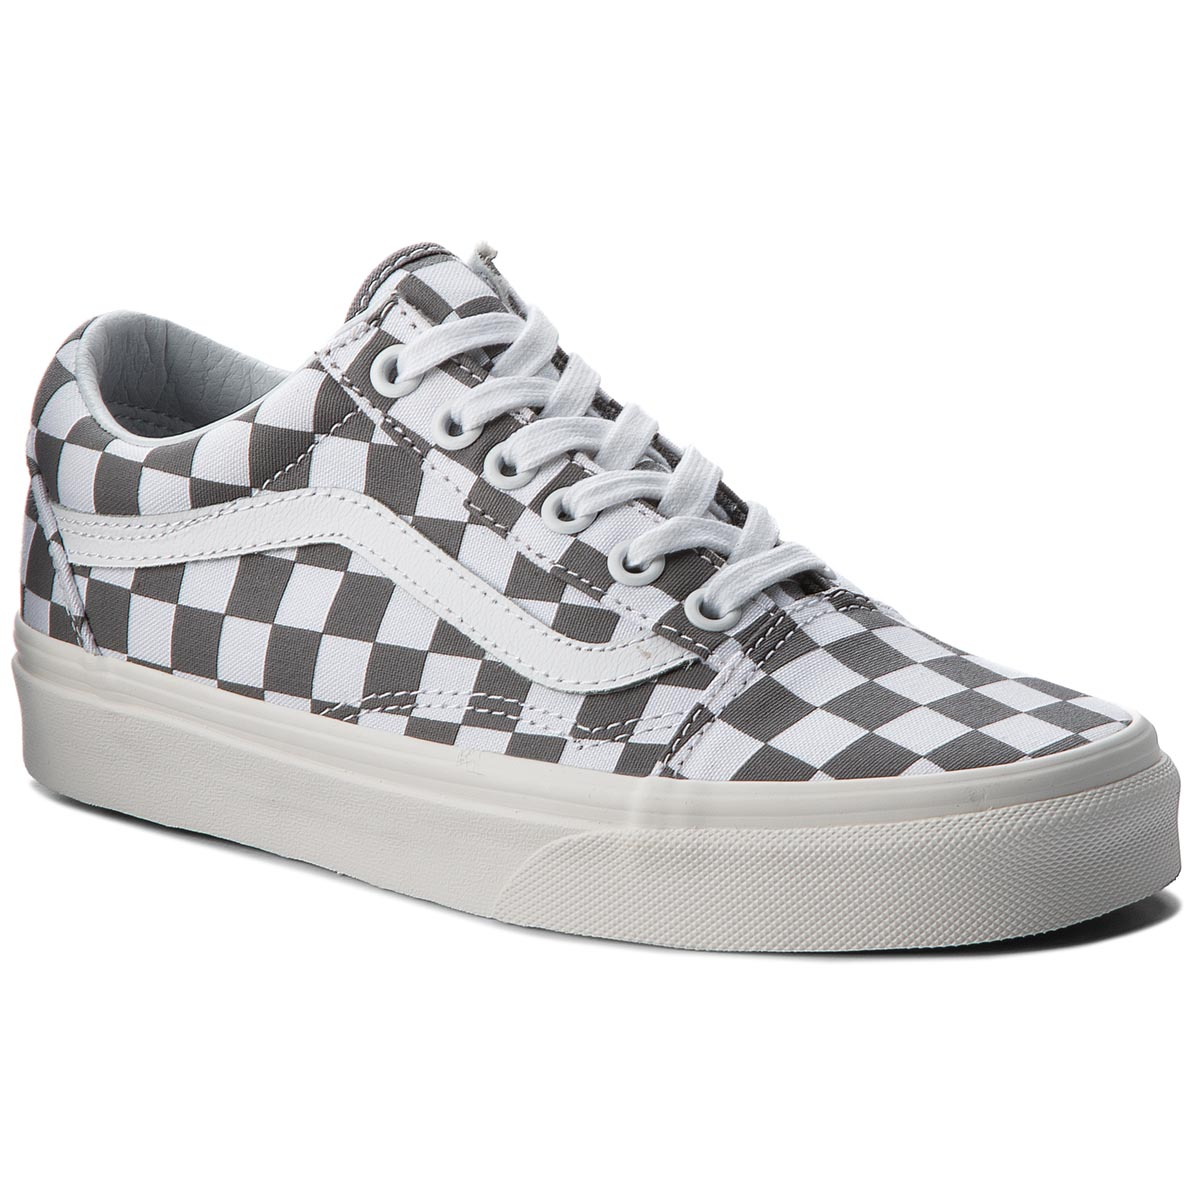 Teniși VANS - Old Skool VN0A38G1U53 (Checkerboard) Pewter/Marshmallow